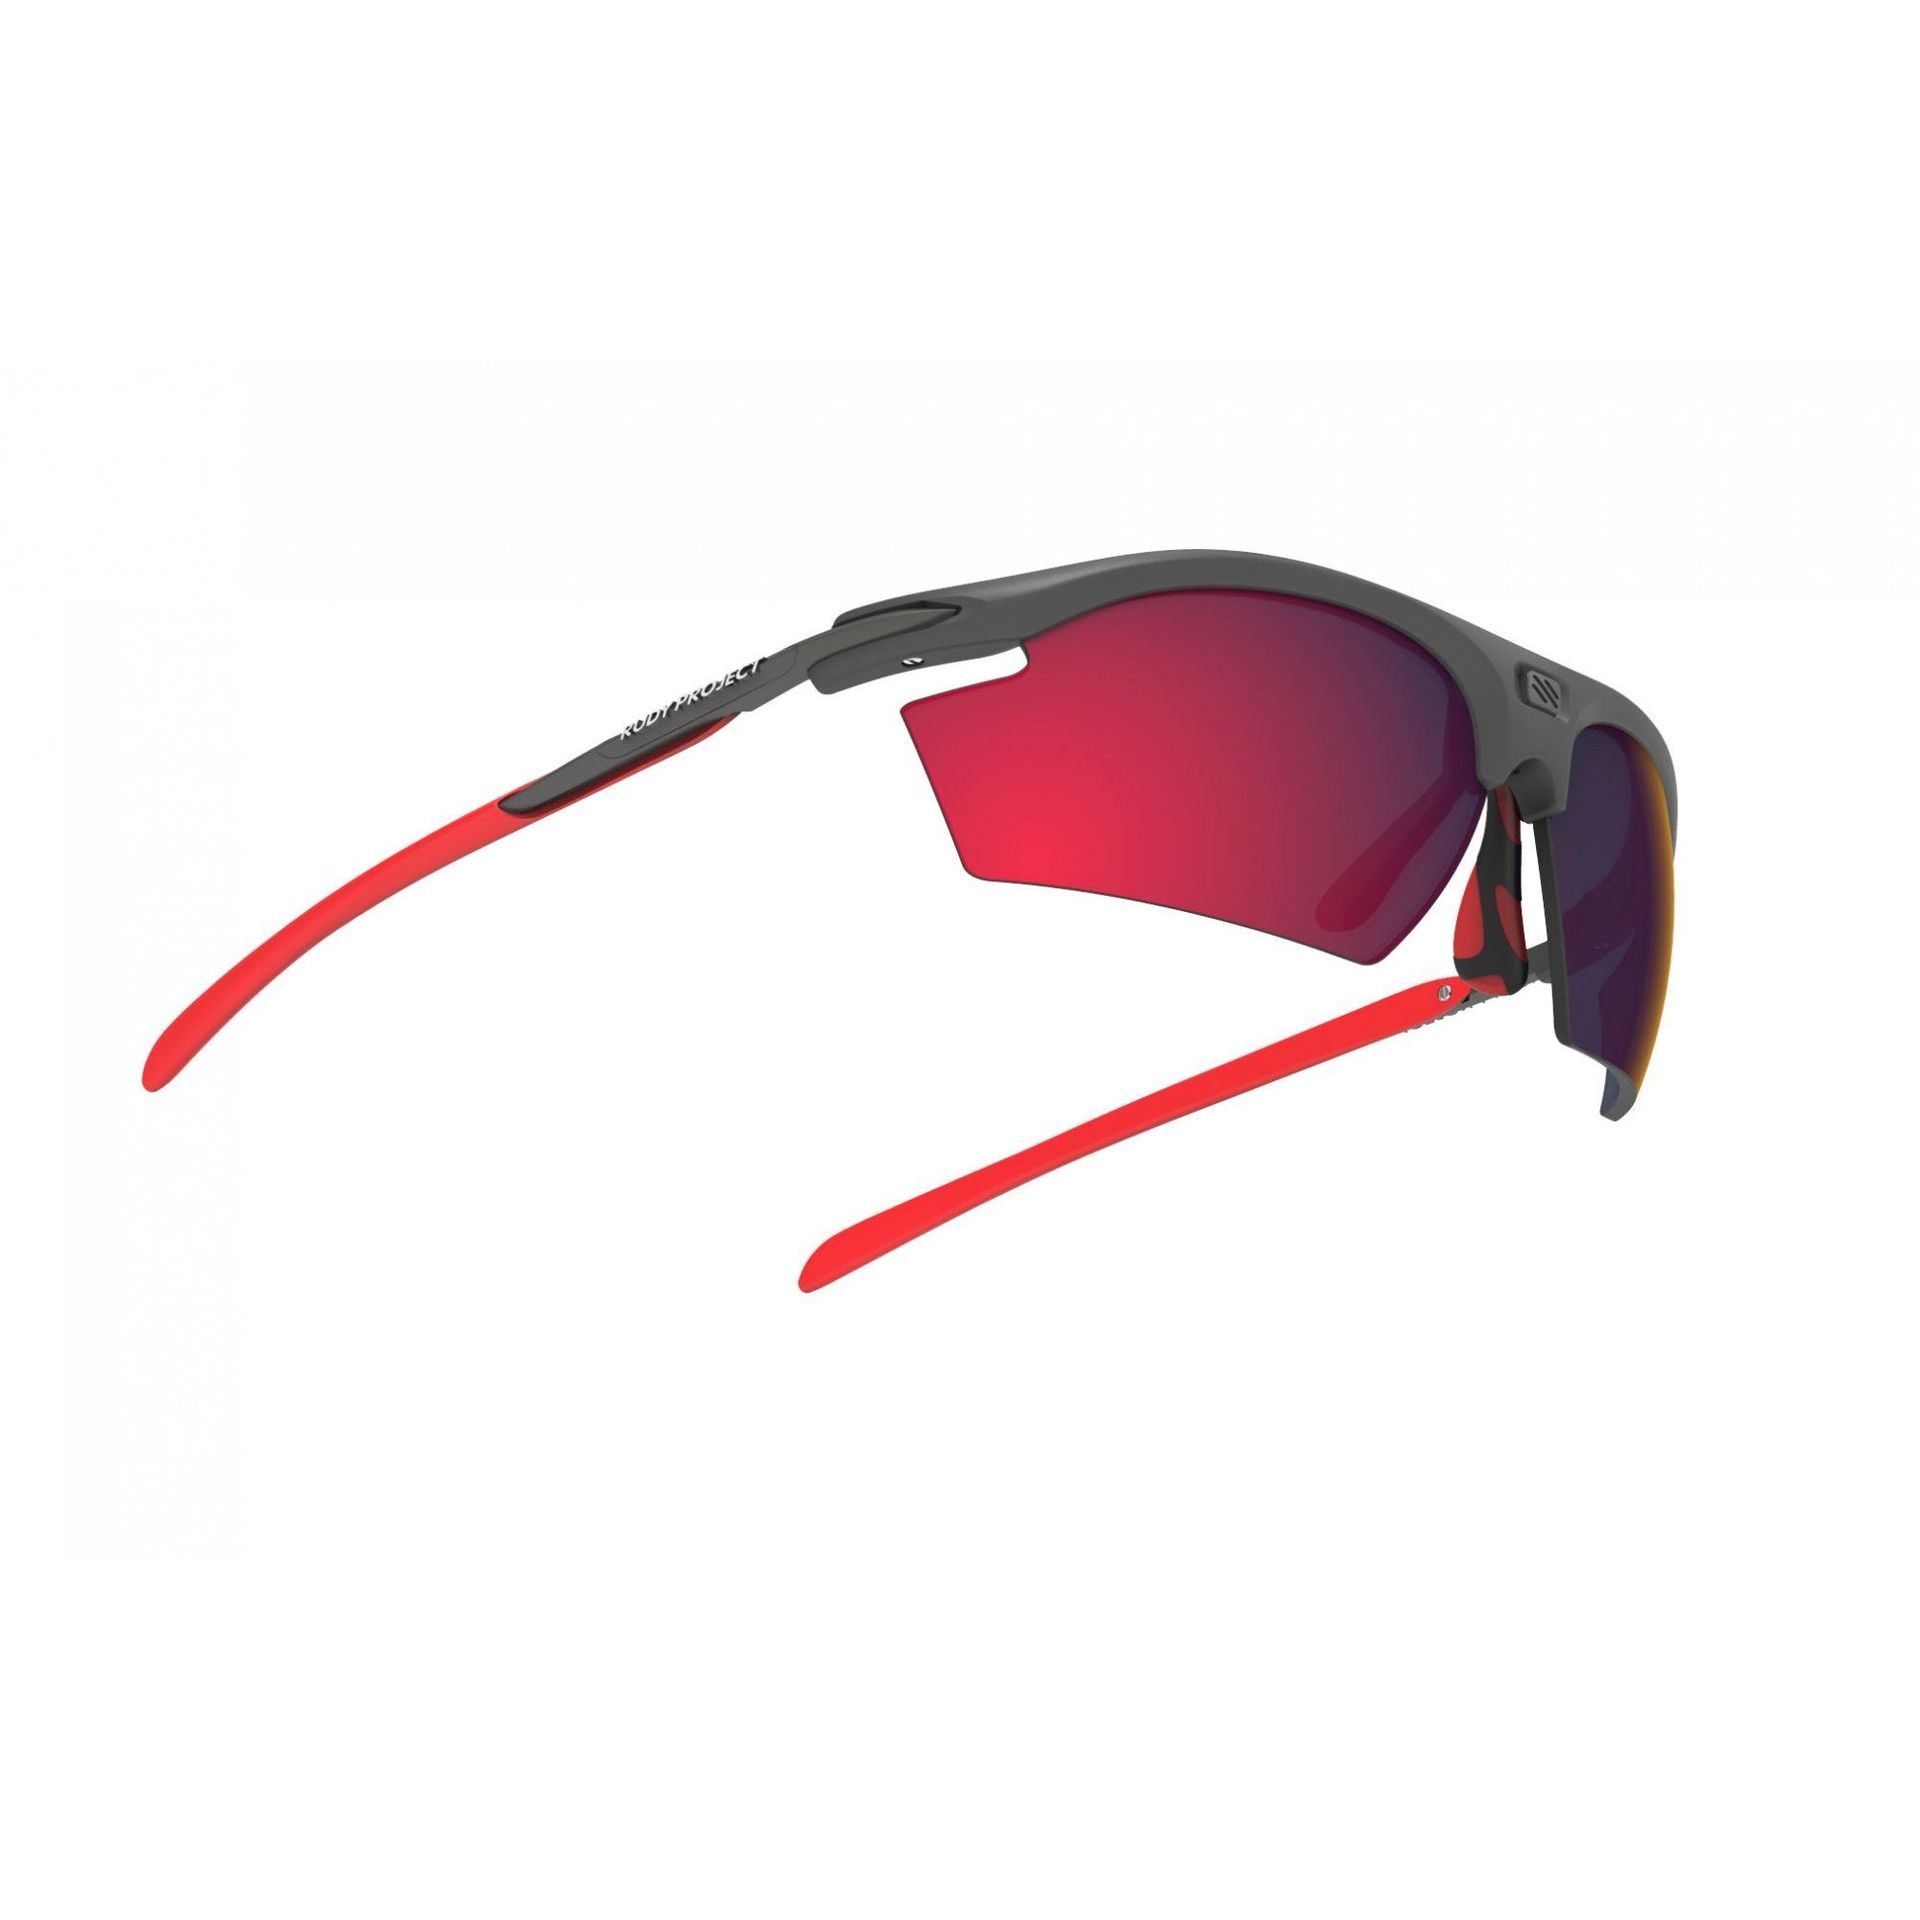 OKULARY RUDY PROJECT RYDON GRAPHITE|RED + ML RED SP533898 3